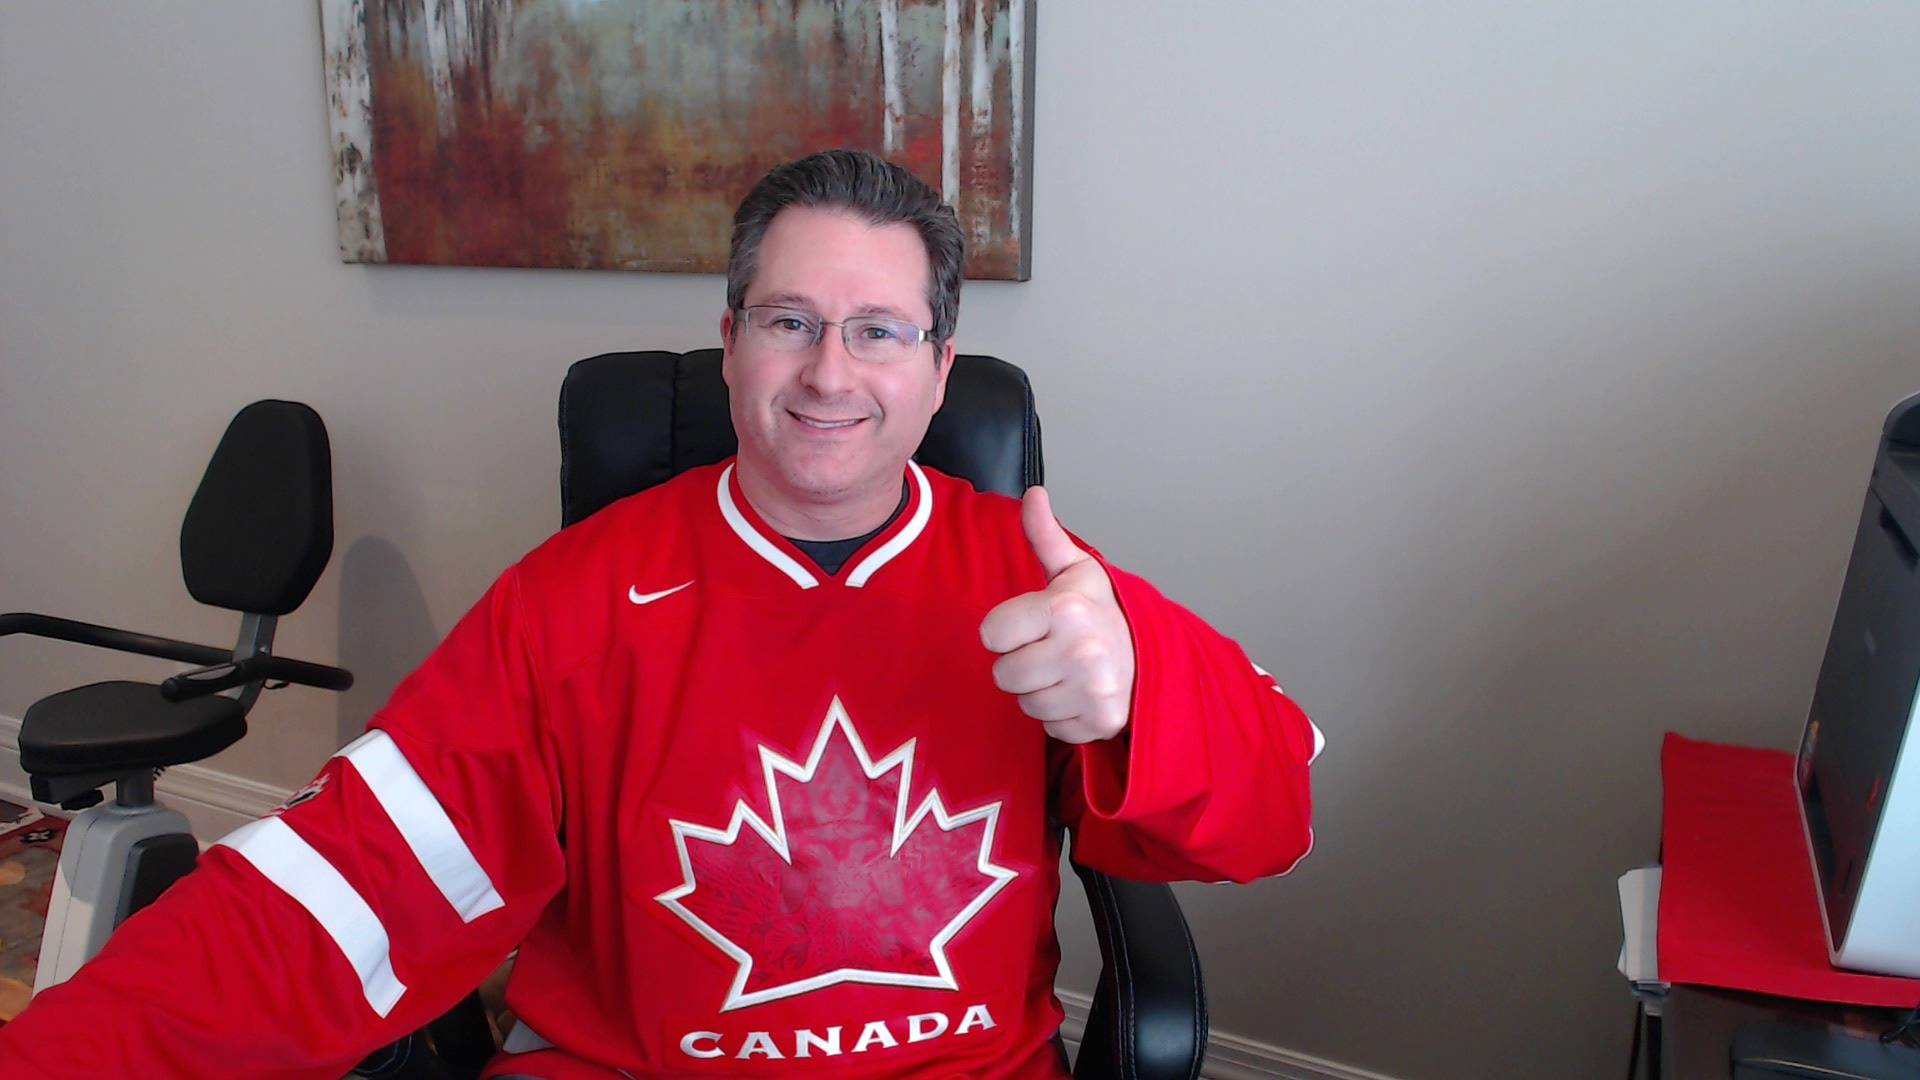 O, Canada! USA loses crucial hockey game, Adam Dicker parties on!